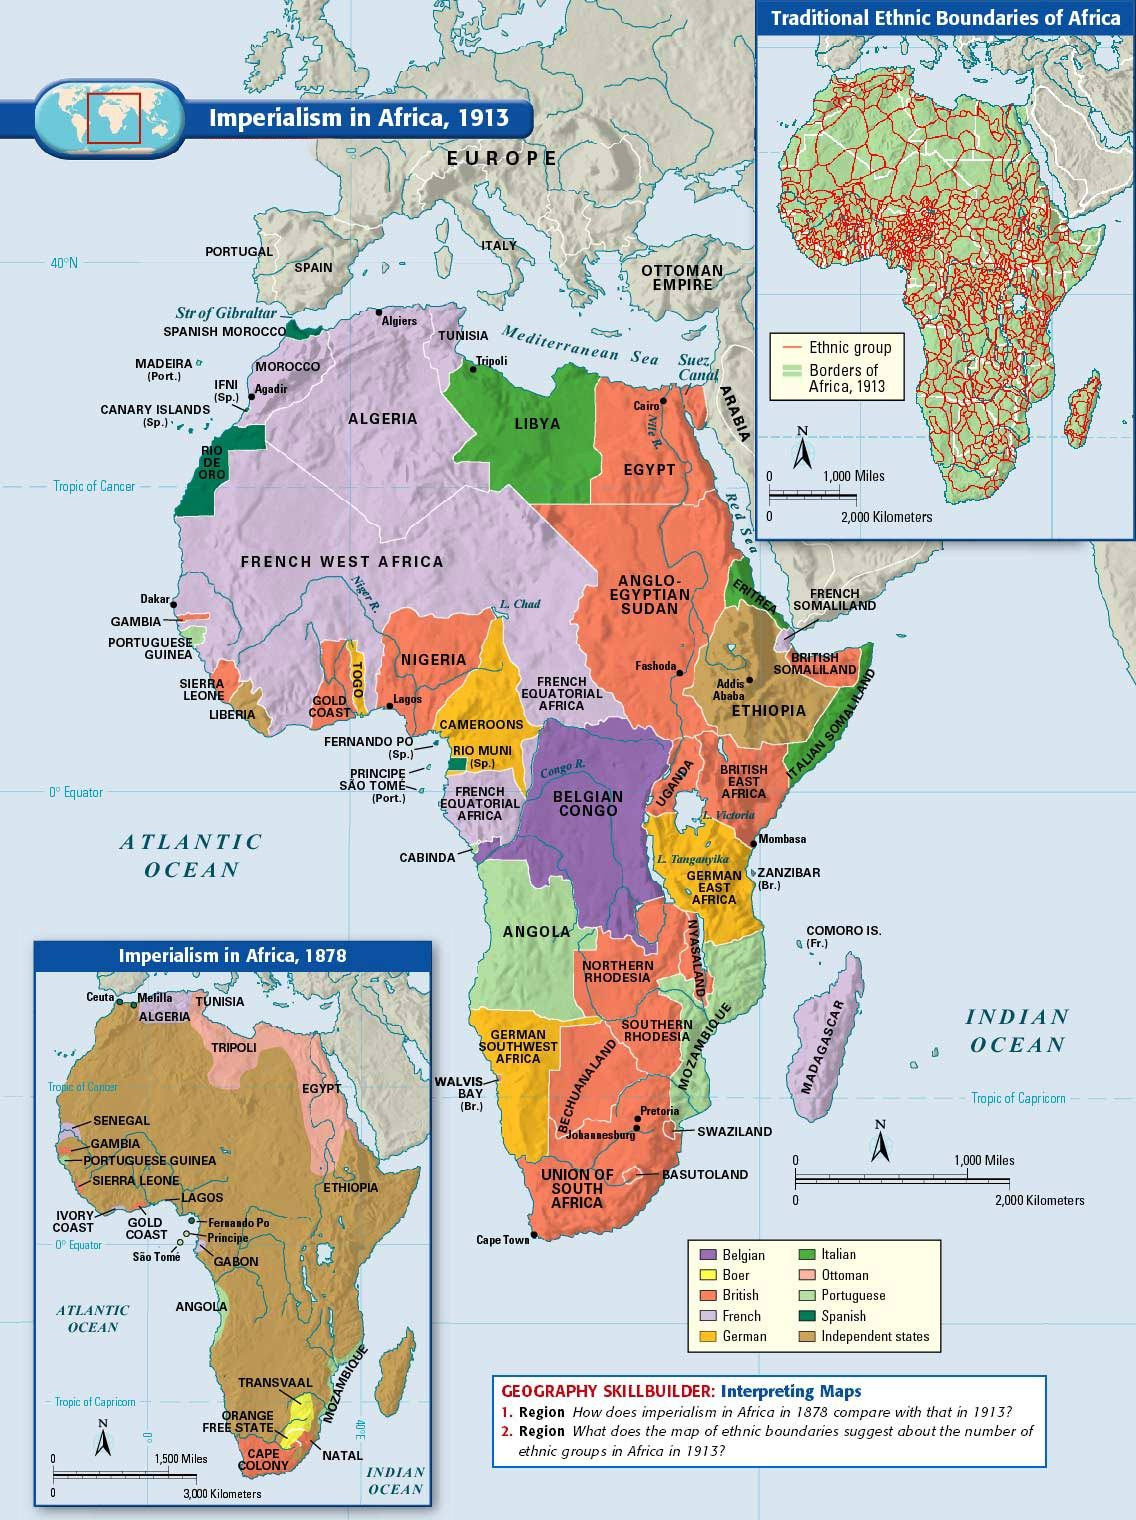 Imperialism in Africa, 1913 | History | Africa map, Map, Historical on libya in africa map, crime in africa map, ethnic conflict in africa map, hiv aids africa map, israel in africa map, genocide in africa map, africa before imperialism map, decolonization in africa map, agricultural revolution in africa map, bodies of water in africa map, imperialism africa map outline, christianity in africa map, terrorism in africa map, ebola in africa map, africa's natural resources map, africa during imperialism map, world in africa map, islam in africa map, different tribes in africa map, european imperialism africa map,